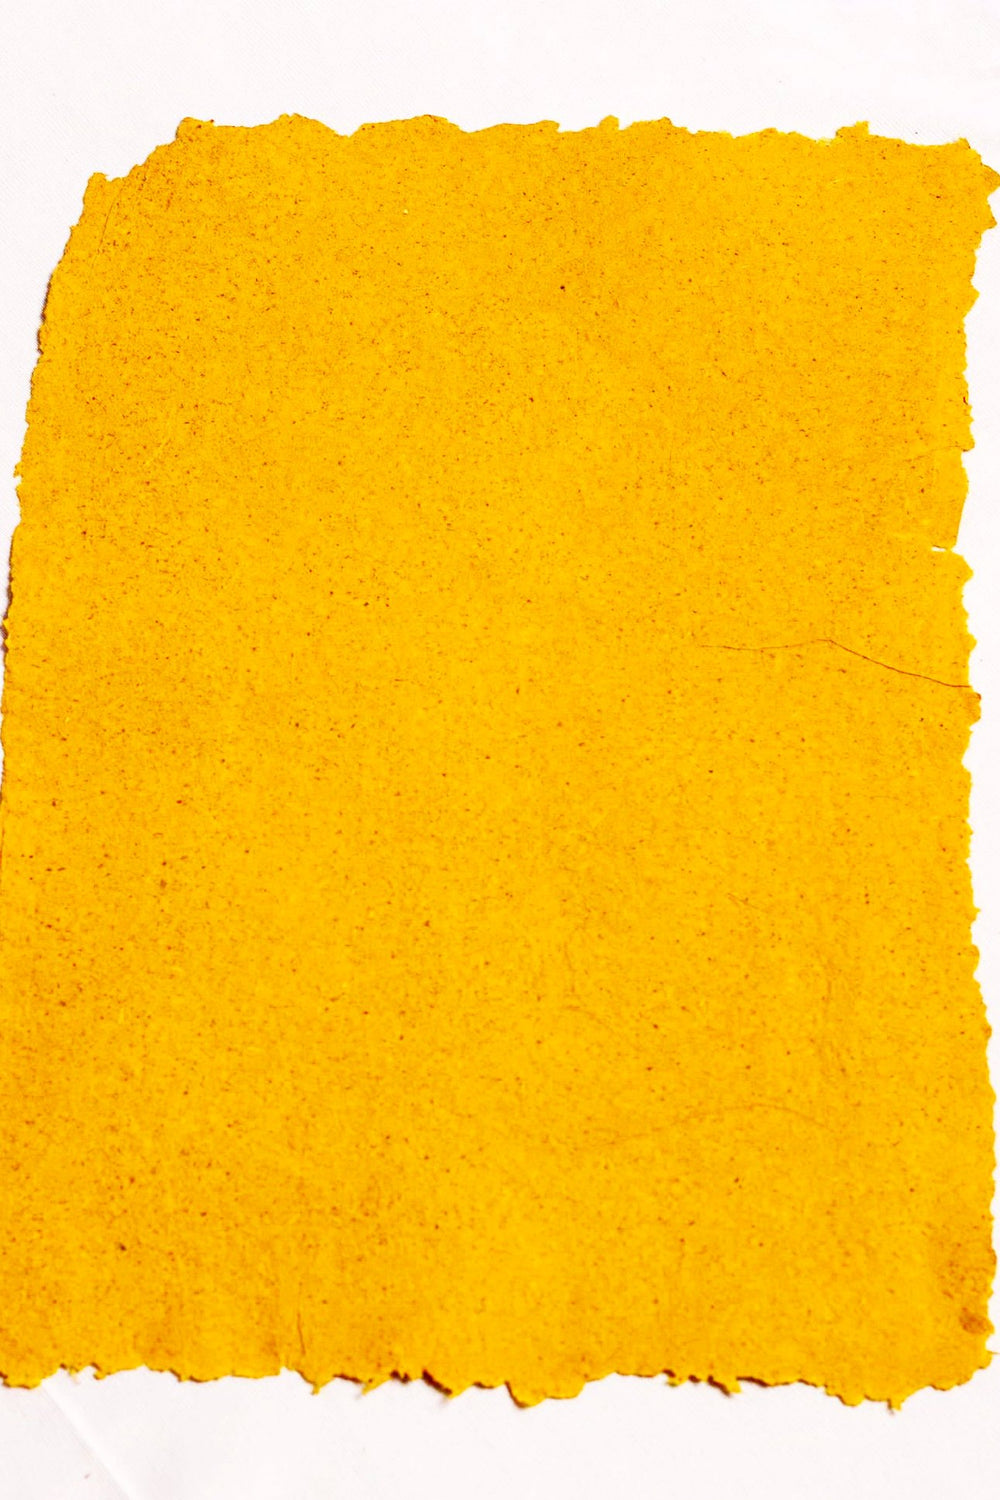 Handcrafted gradient paper yellow